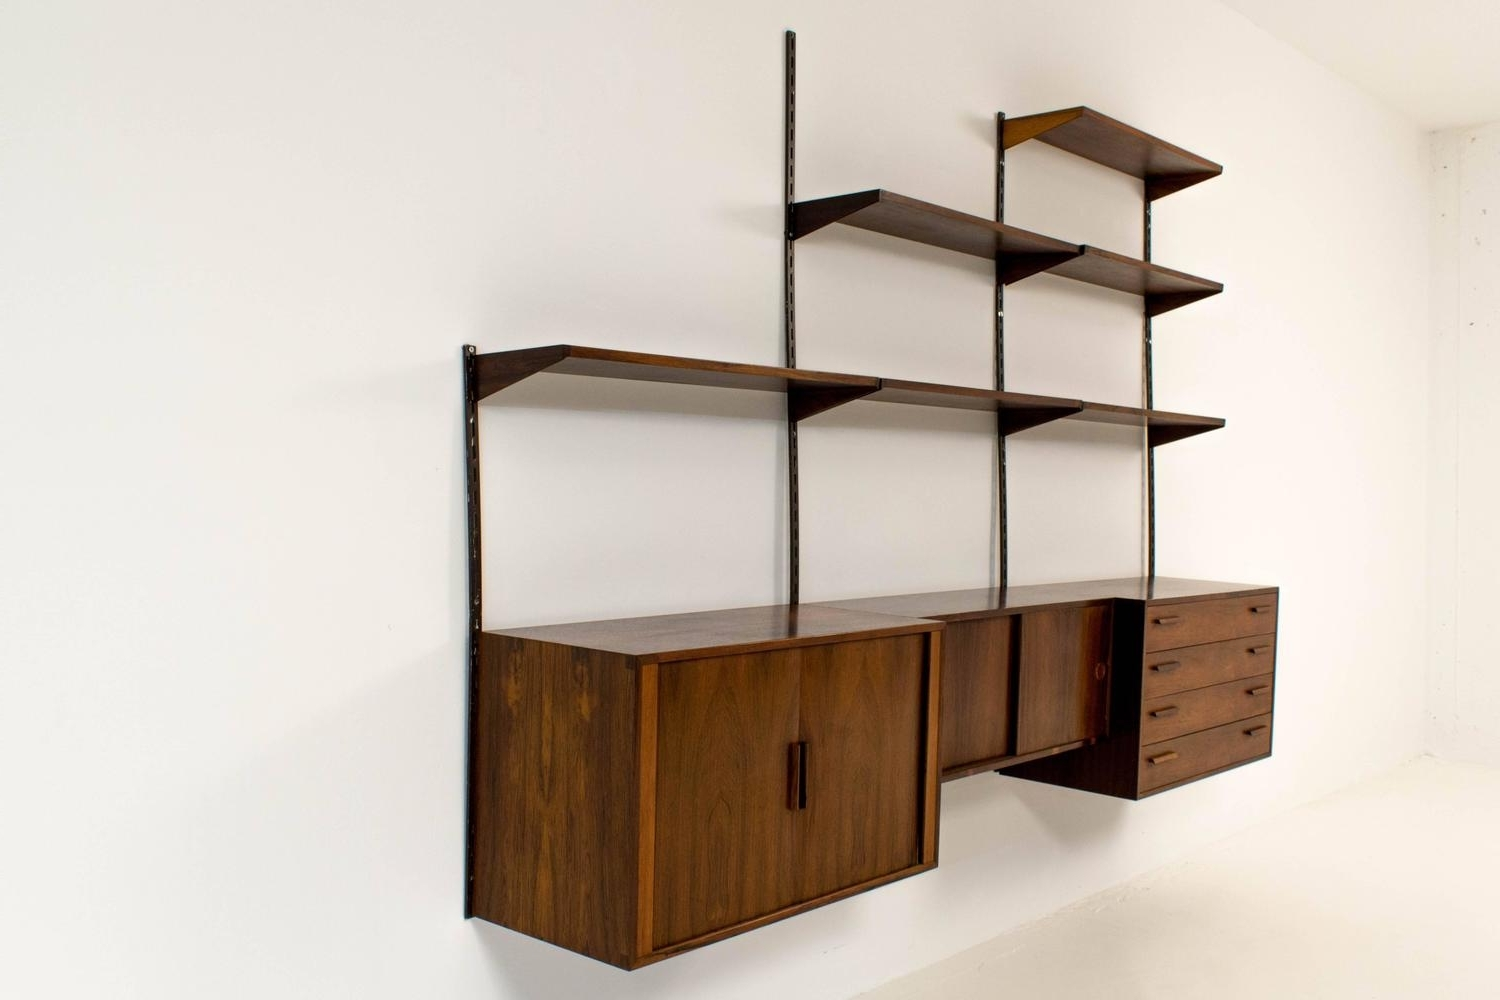 Famous Oak Wall Shelving Units With Regard To Andreas Wall Mounted Shelving Unit In Sand Oak And 9 Compartment (View 10 of 15)